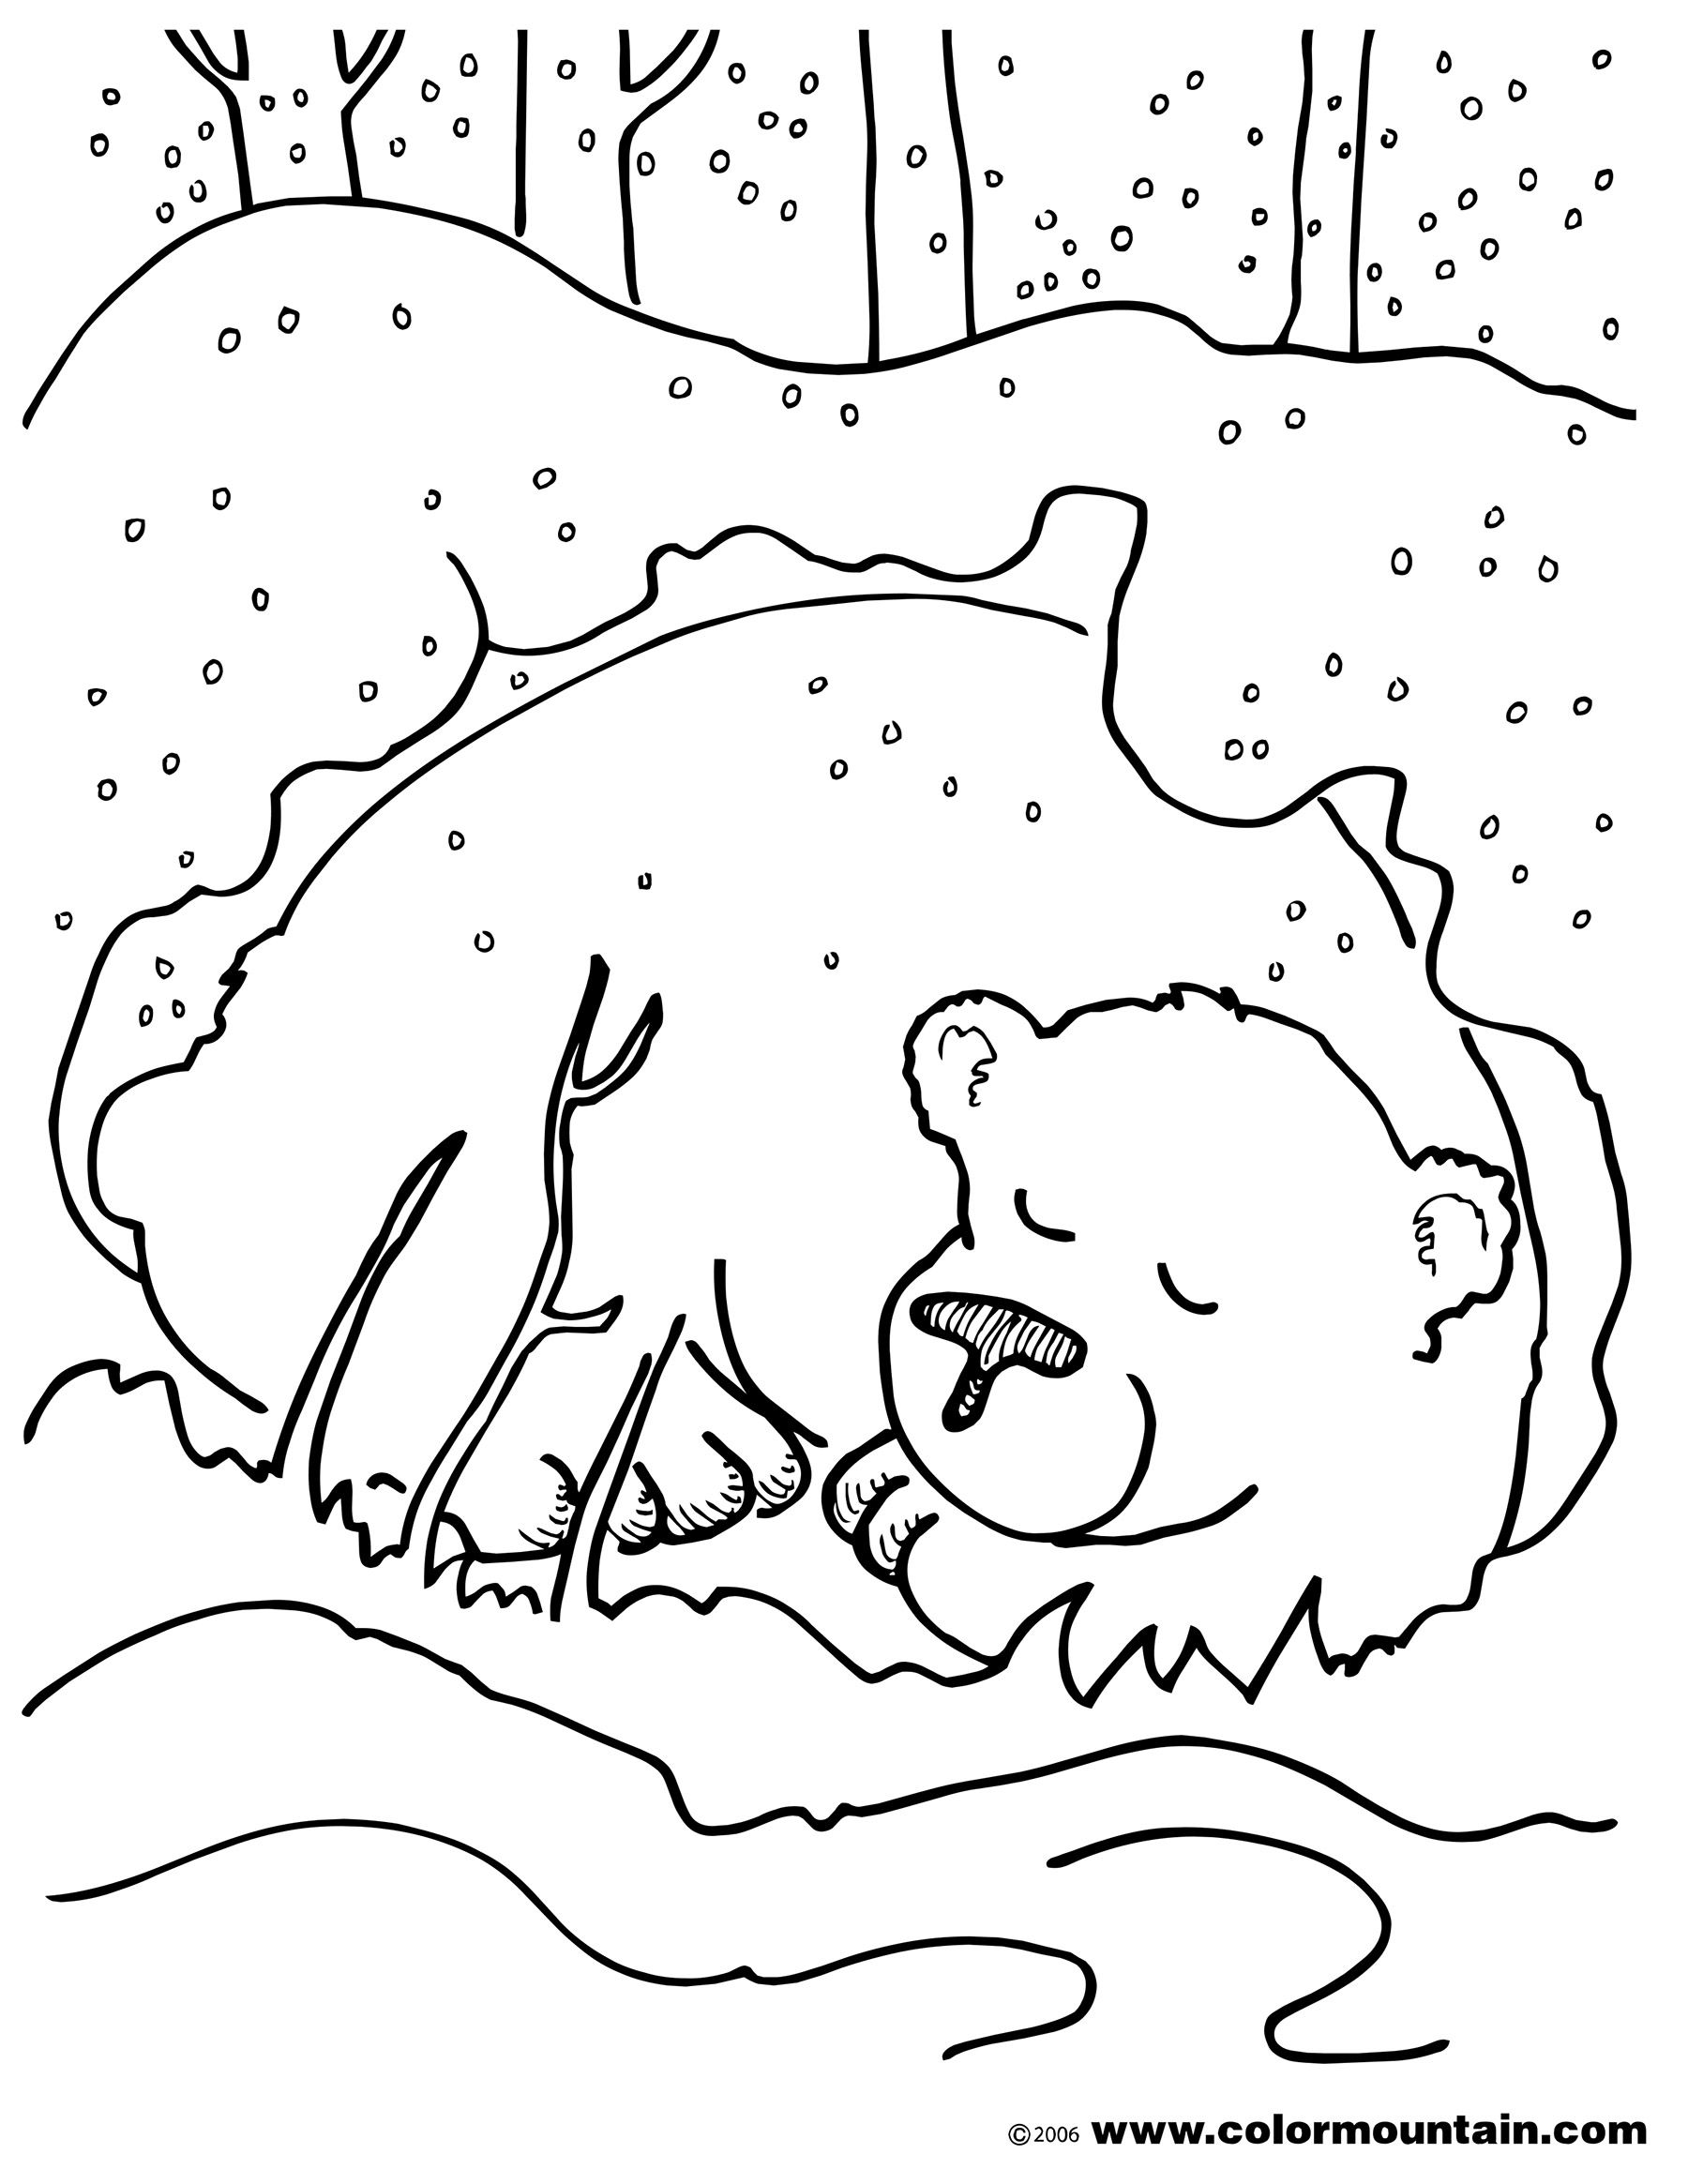 Hibernating Bear Color Sheet Create A Printout Or Activity Bear Coloring Pages Coloring Pages Winter Animal Coloring Pages